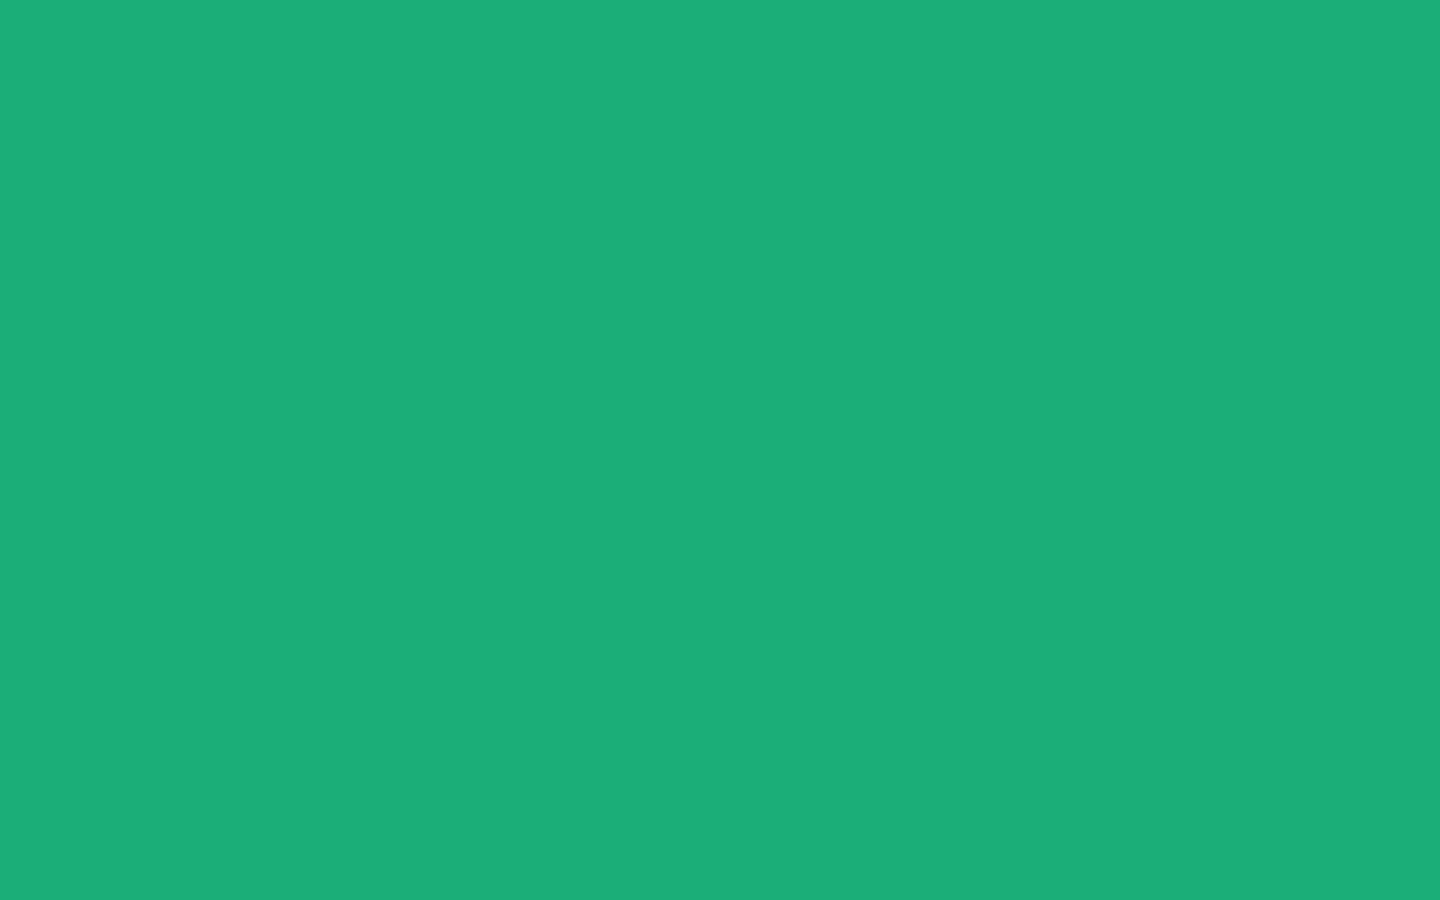 1440x900 Green Crayola Solid Color Background